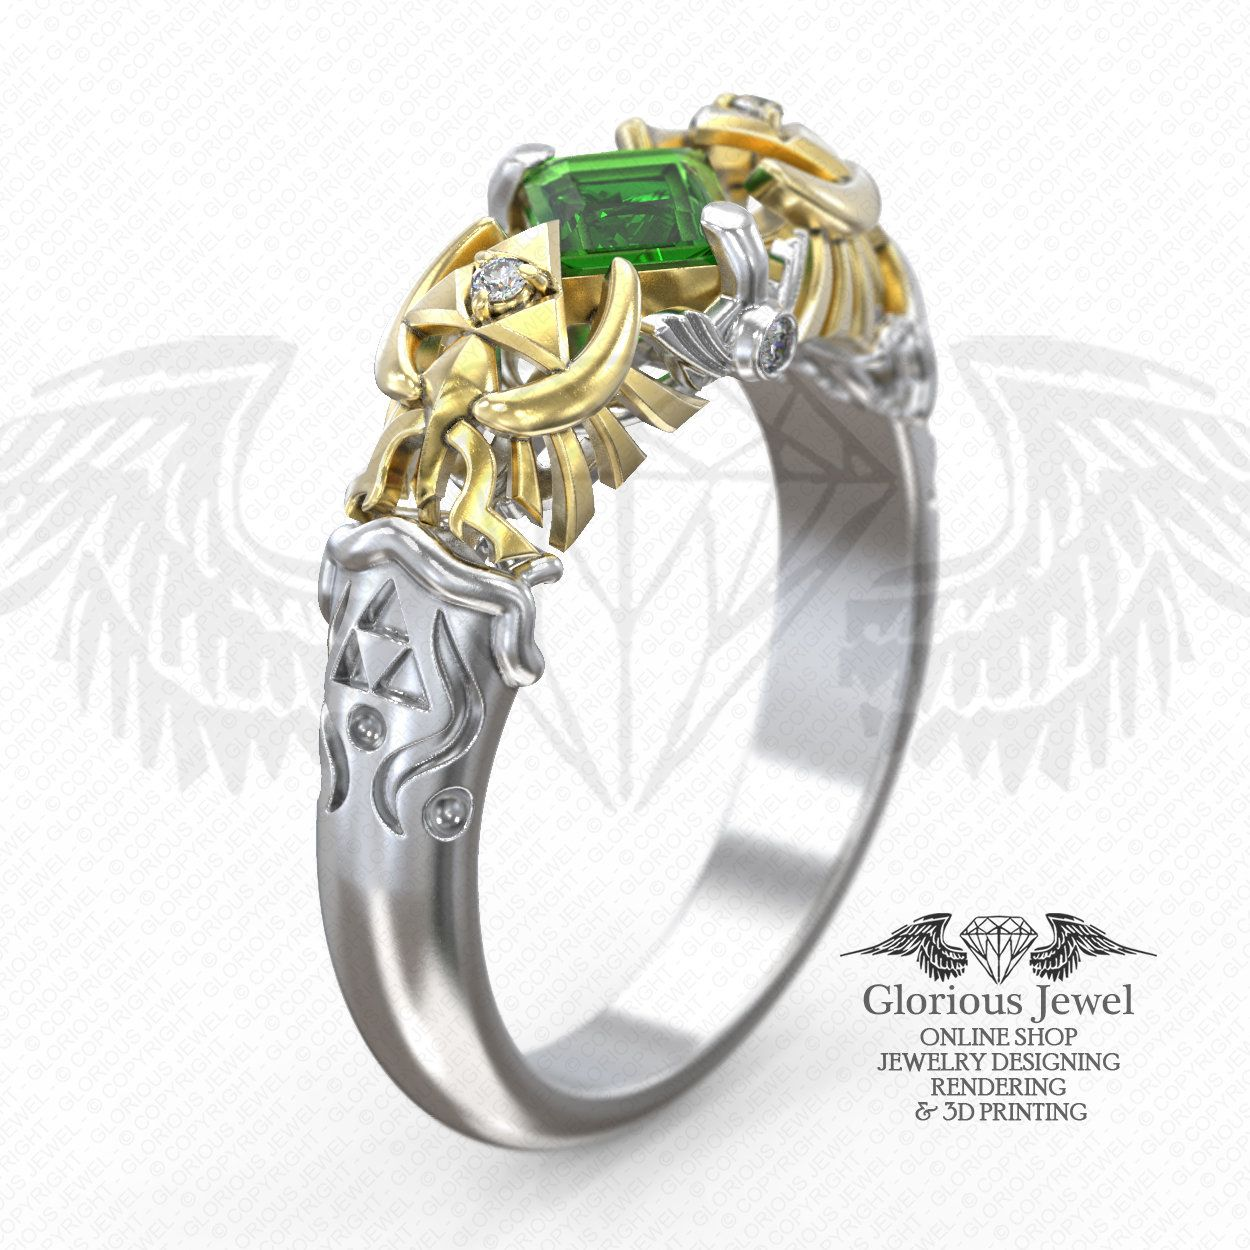 Glorious Custom Made Hyrule Warriors Triforce Legend Of Zelda Nintendo Inspired Game Ring Available In Gold 14k By Gloriousjewelsc On Etsy: Spiritual Stones Zelda Wedding Rings At Websimilar.org